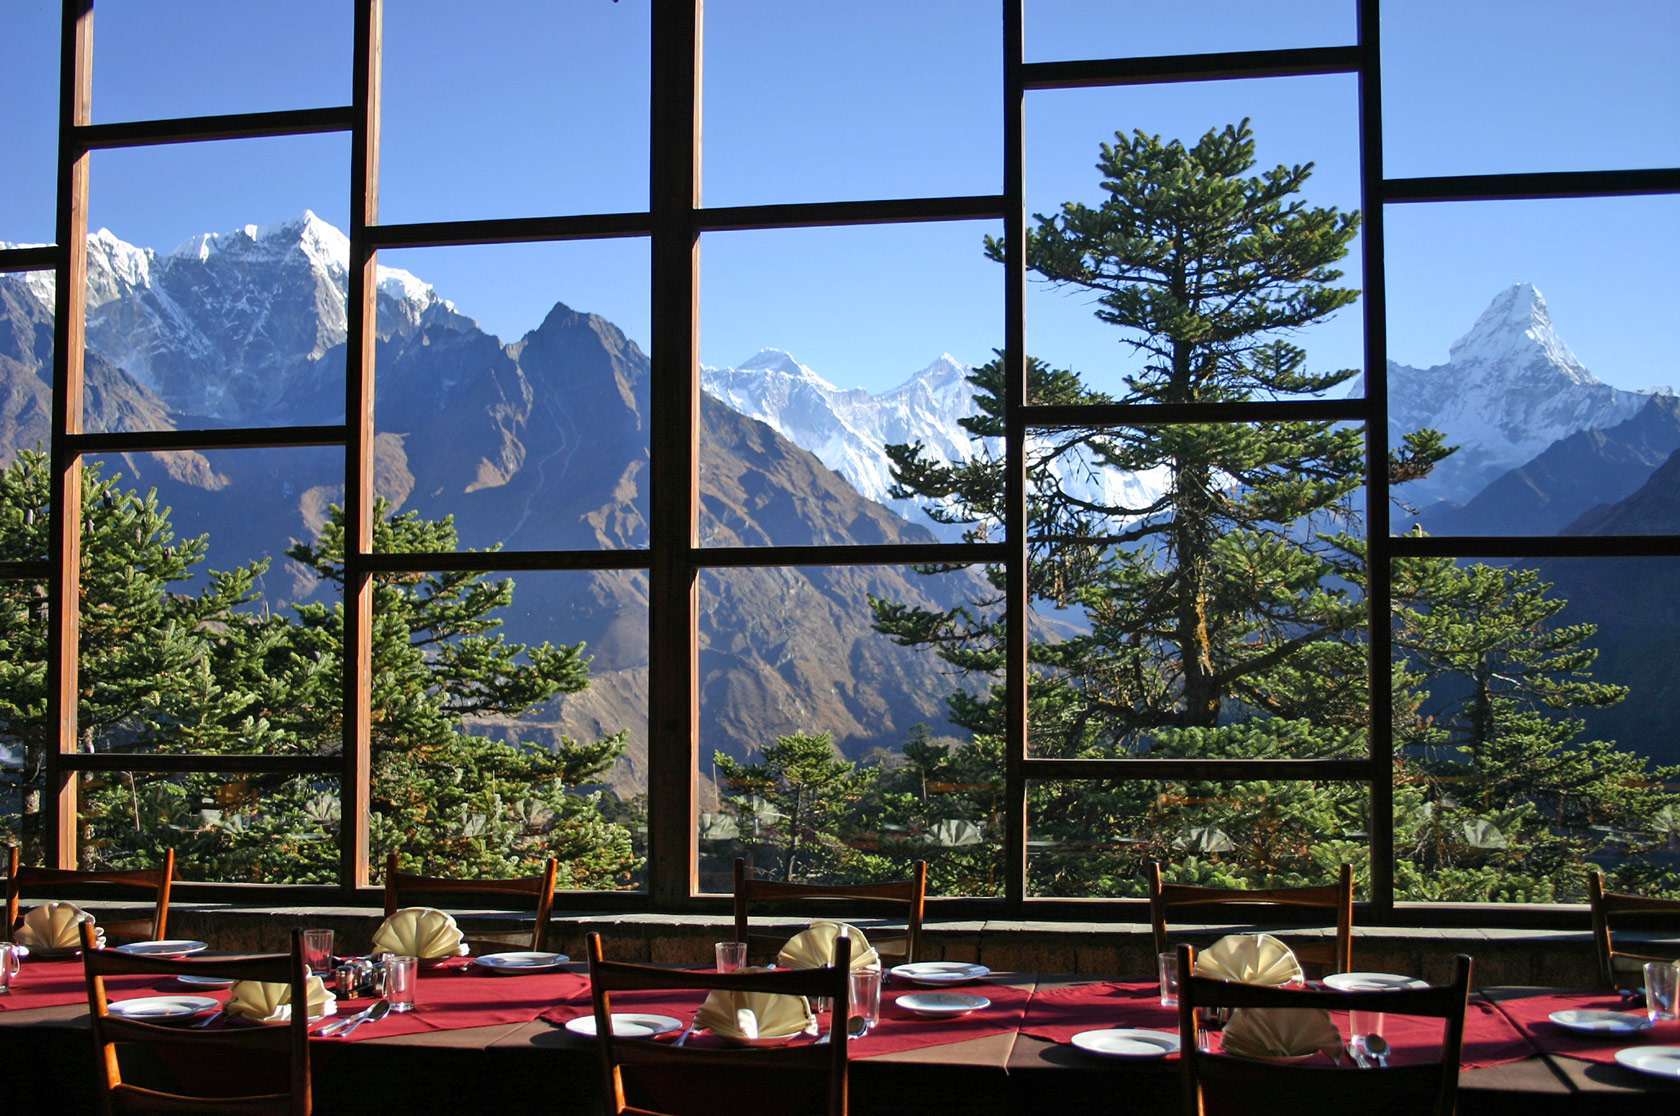 Unique hotel Hotel Everest View1, Nepal